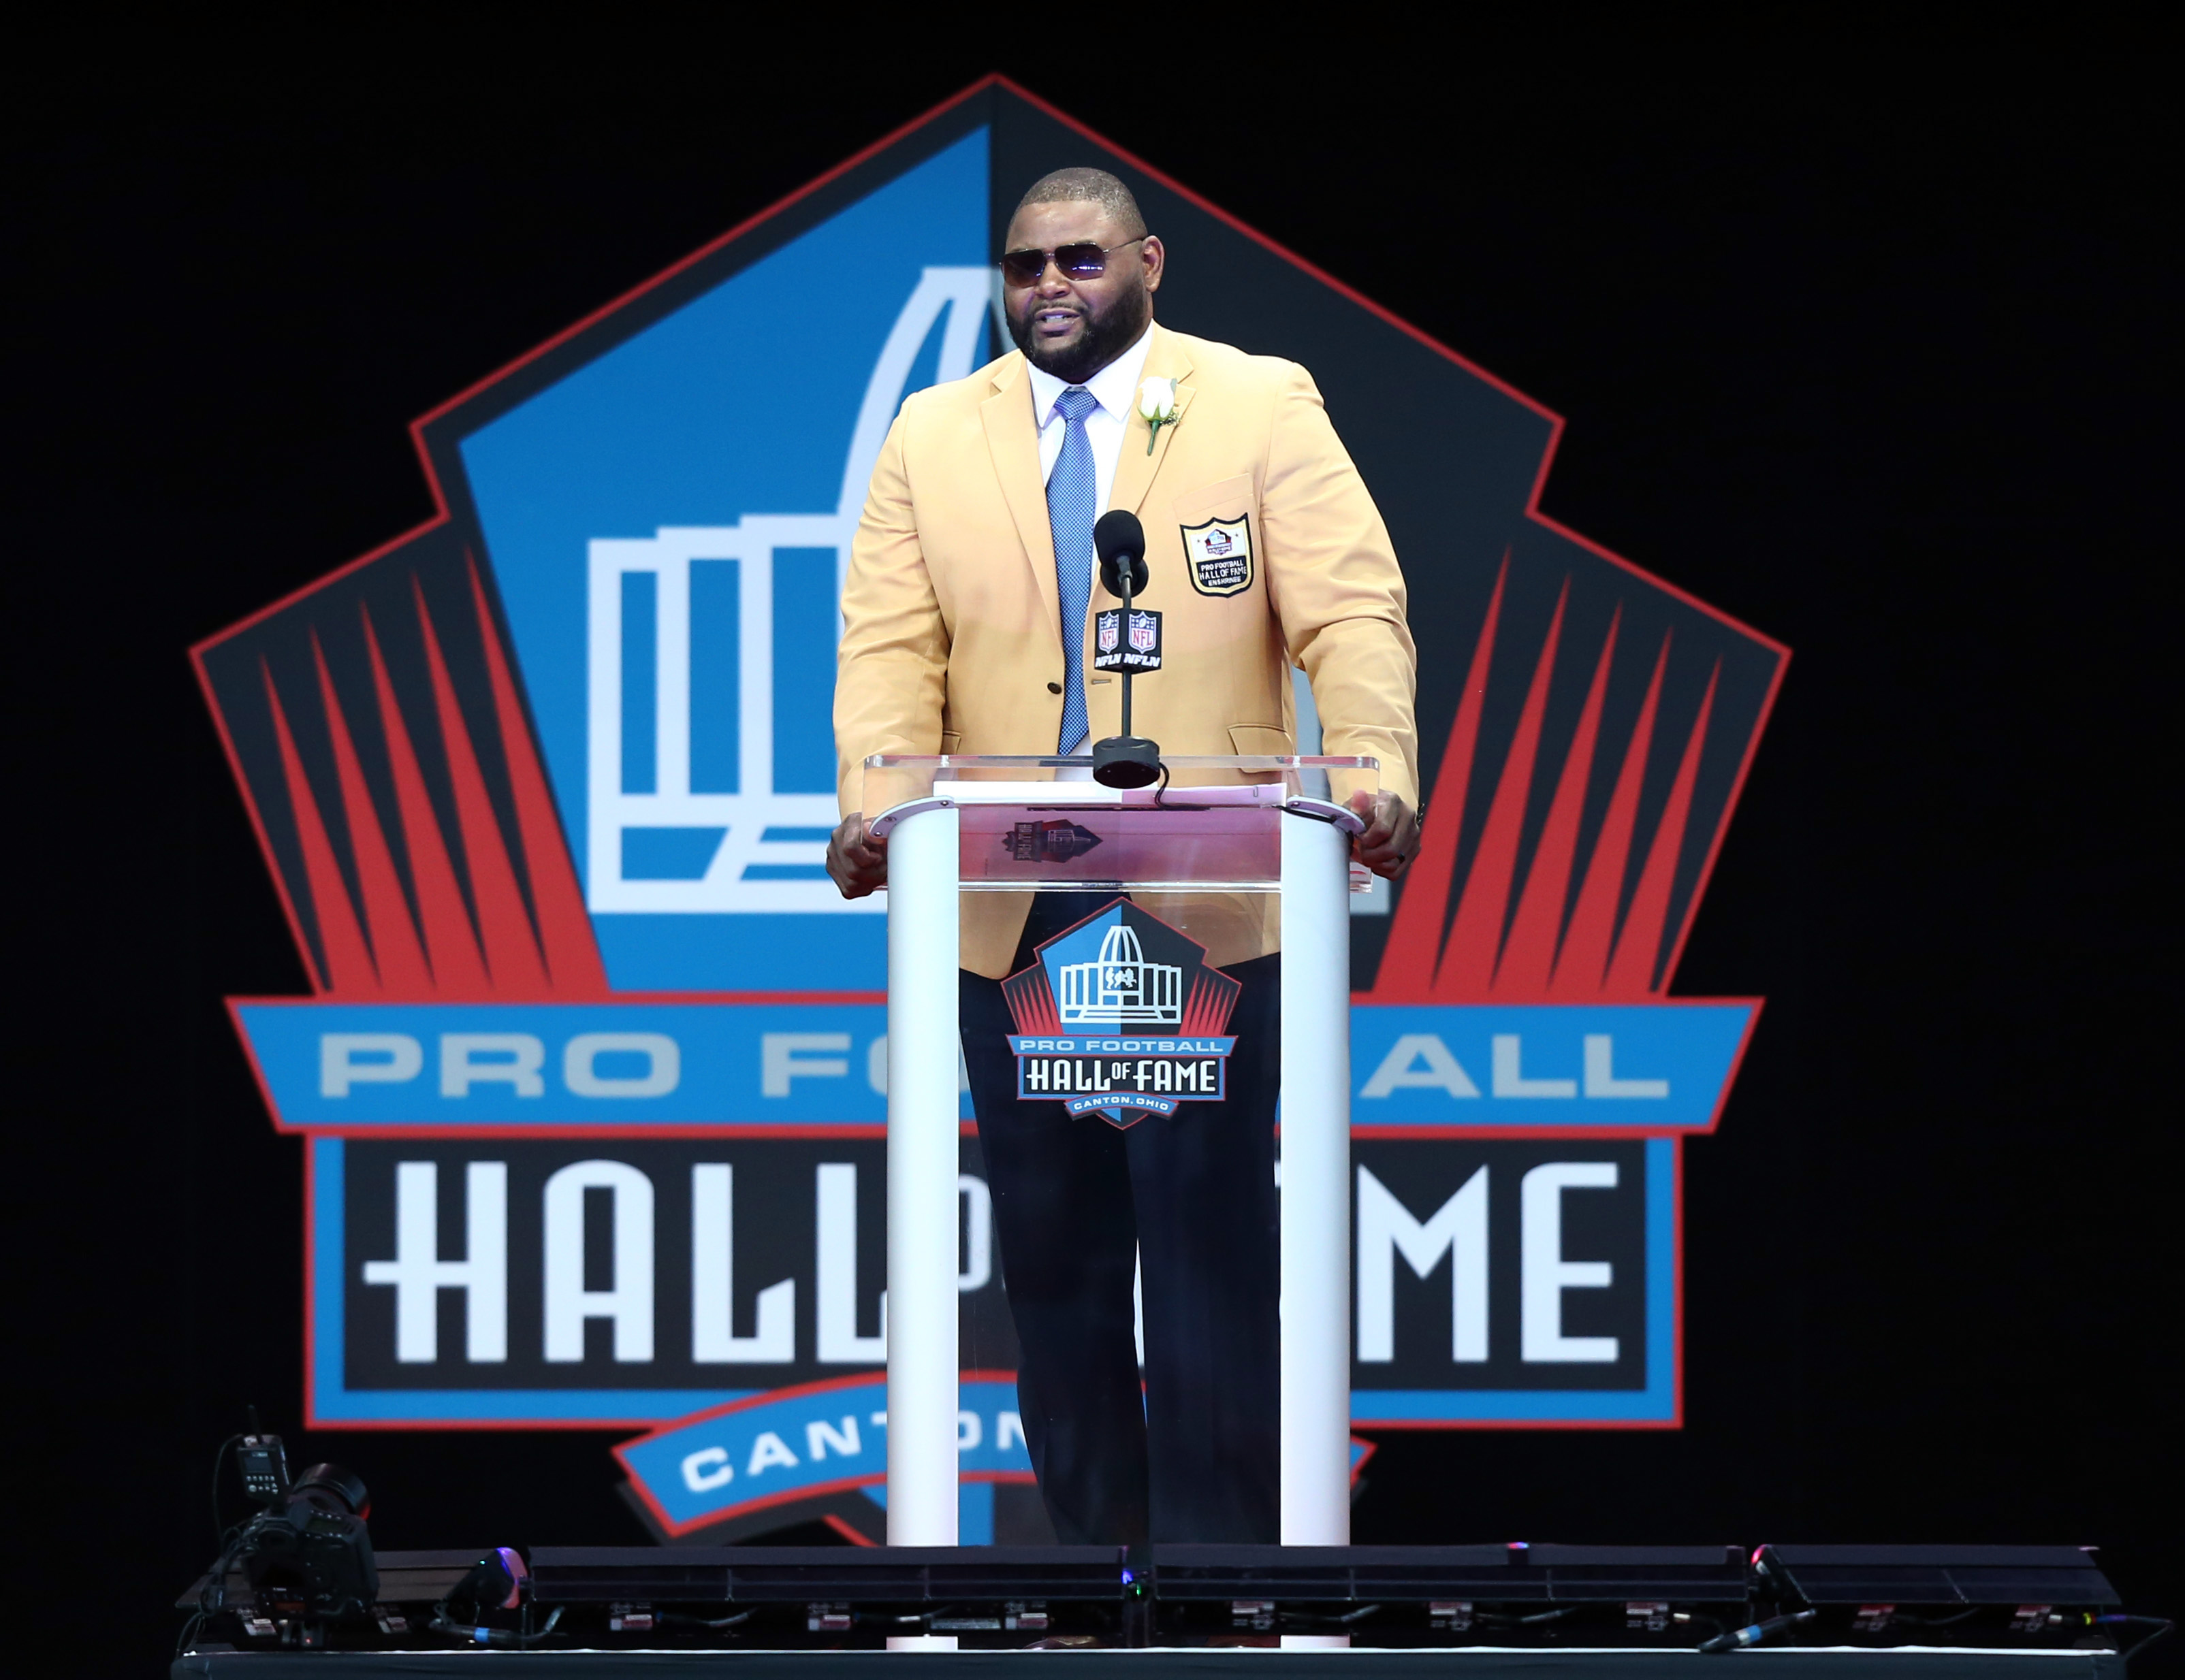 Former St. Louis Rams OT Orlando Pace